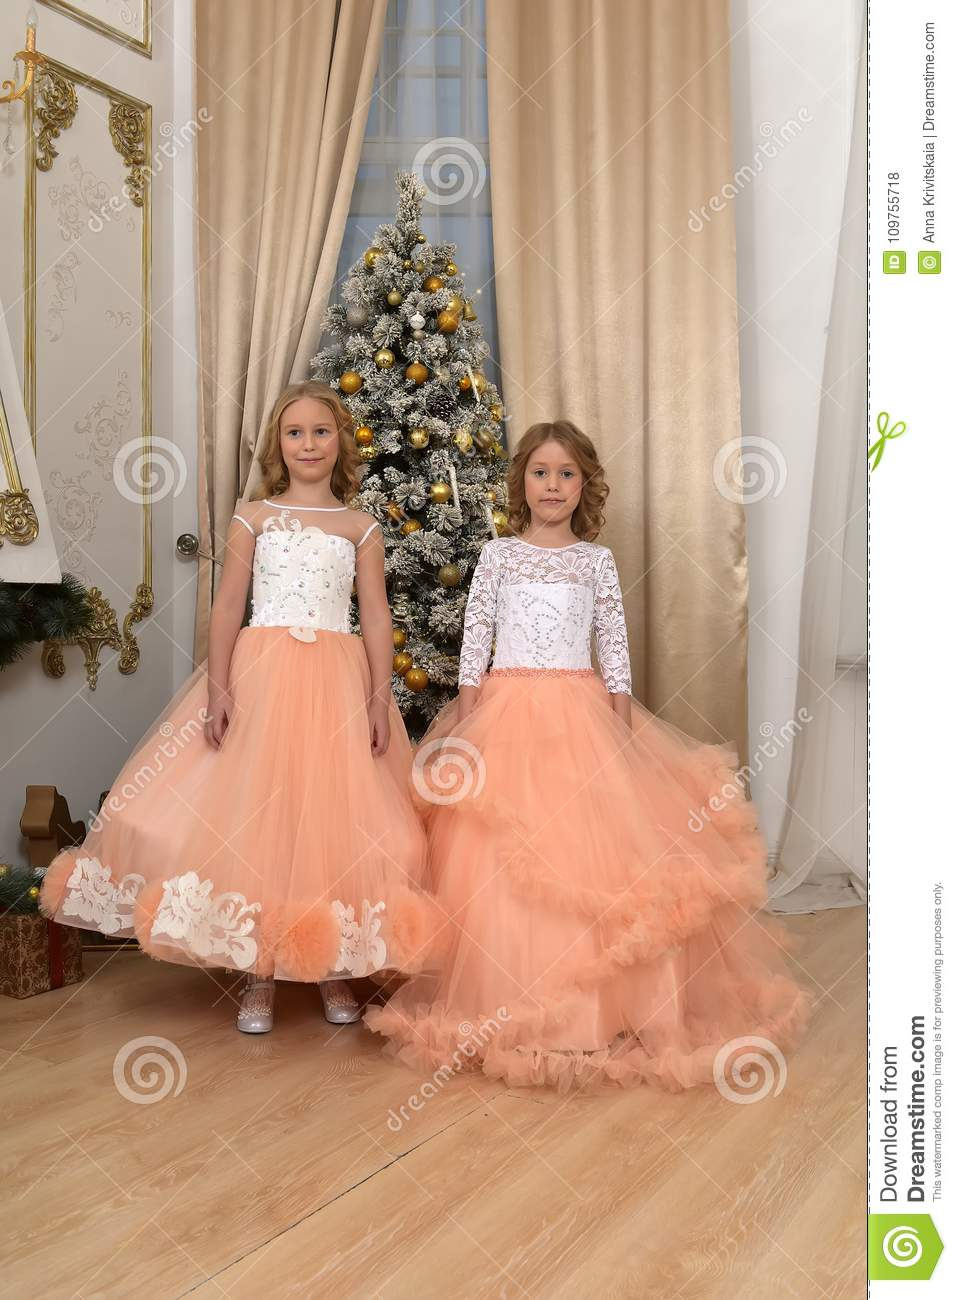 two young sisters in white with peach dresses